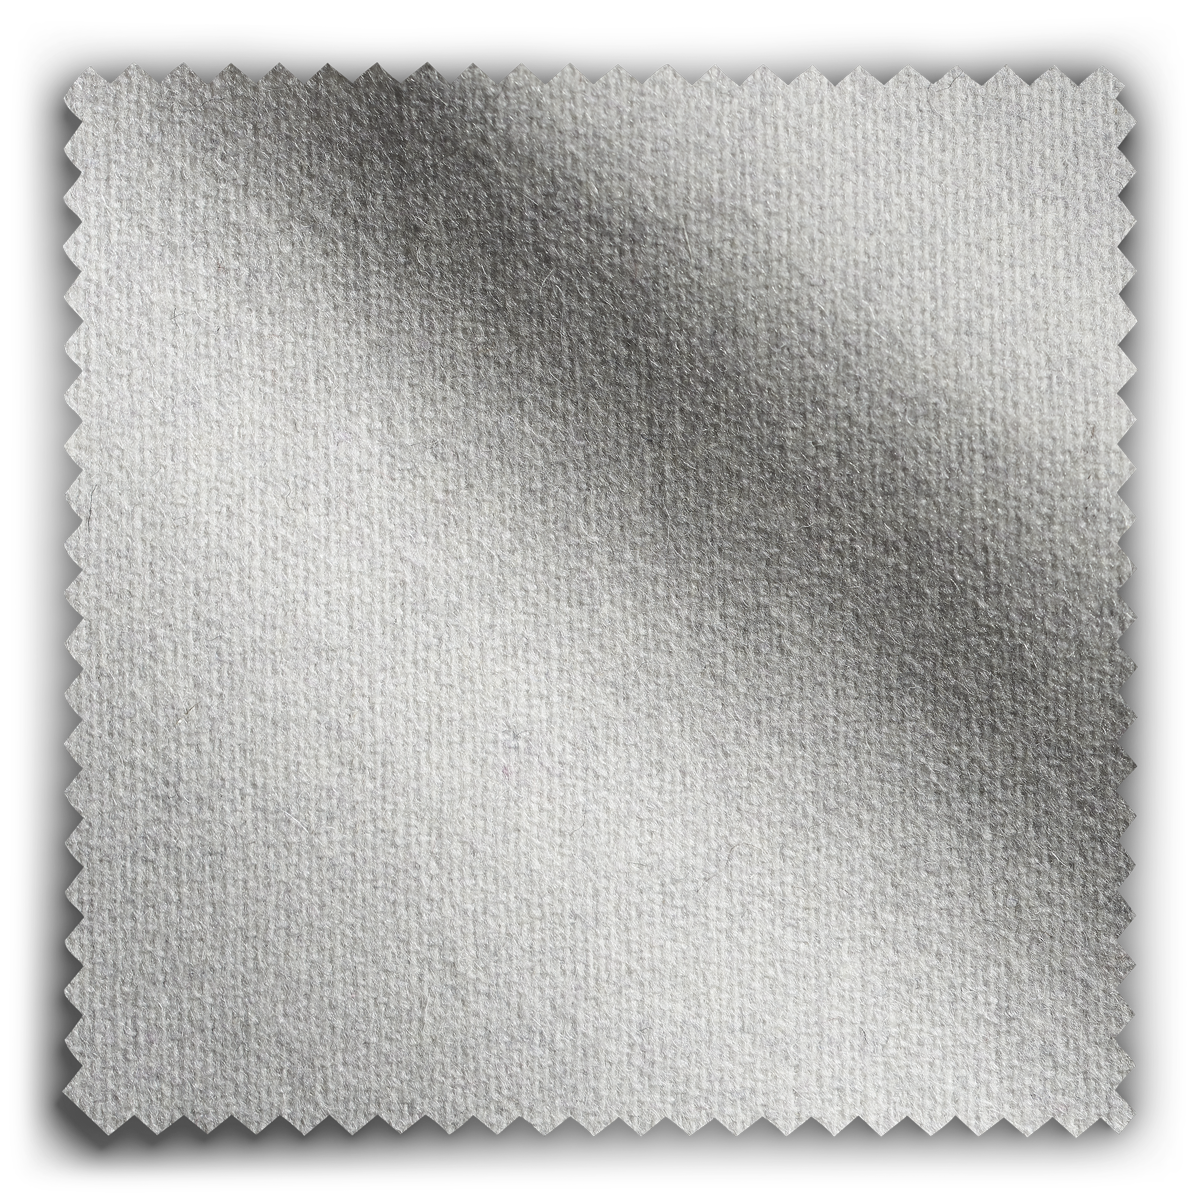 Image of Style Wool Soft Silver fabric